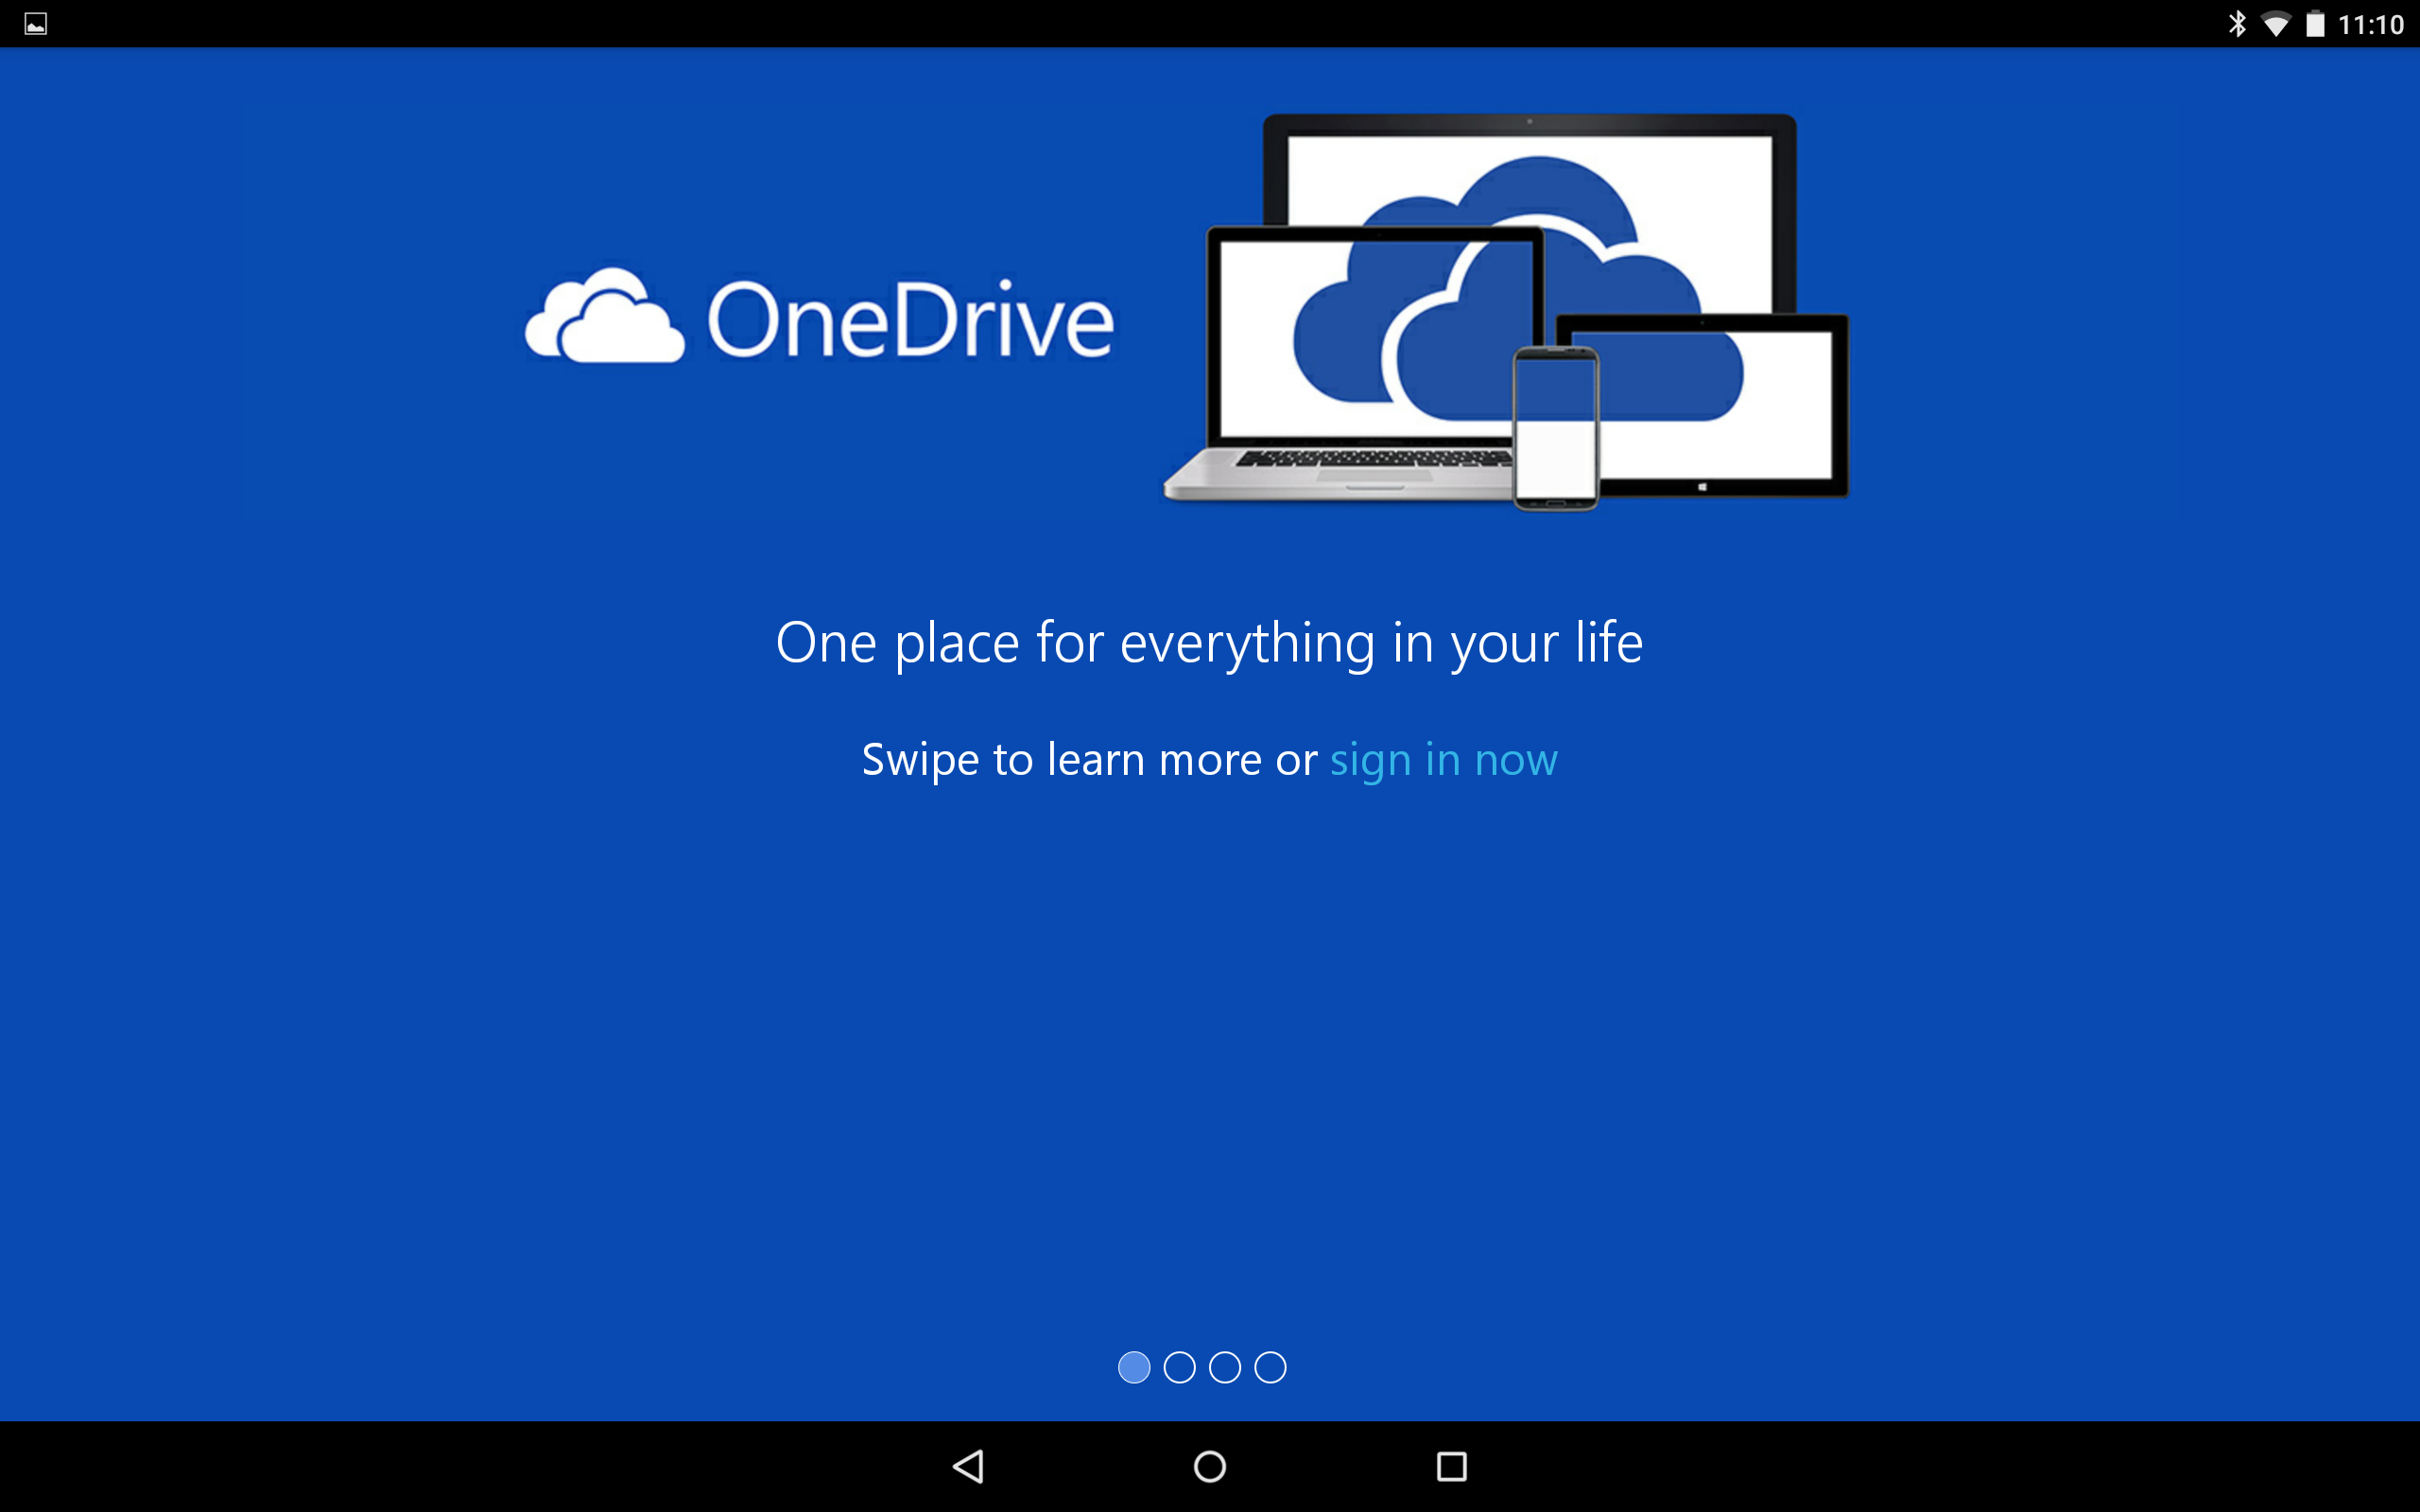 onedrive for business user guide